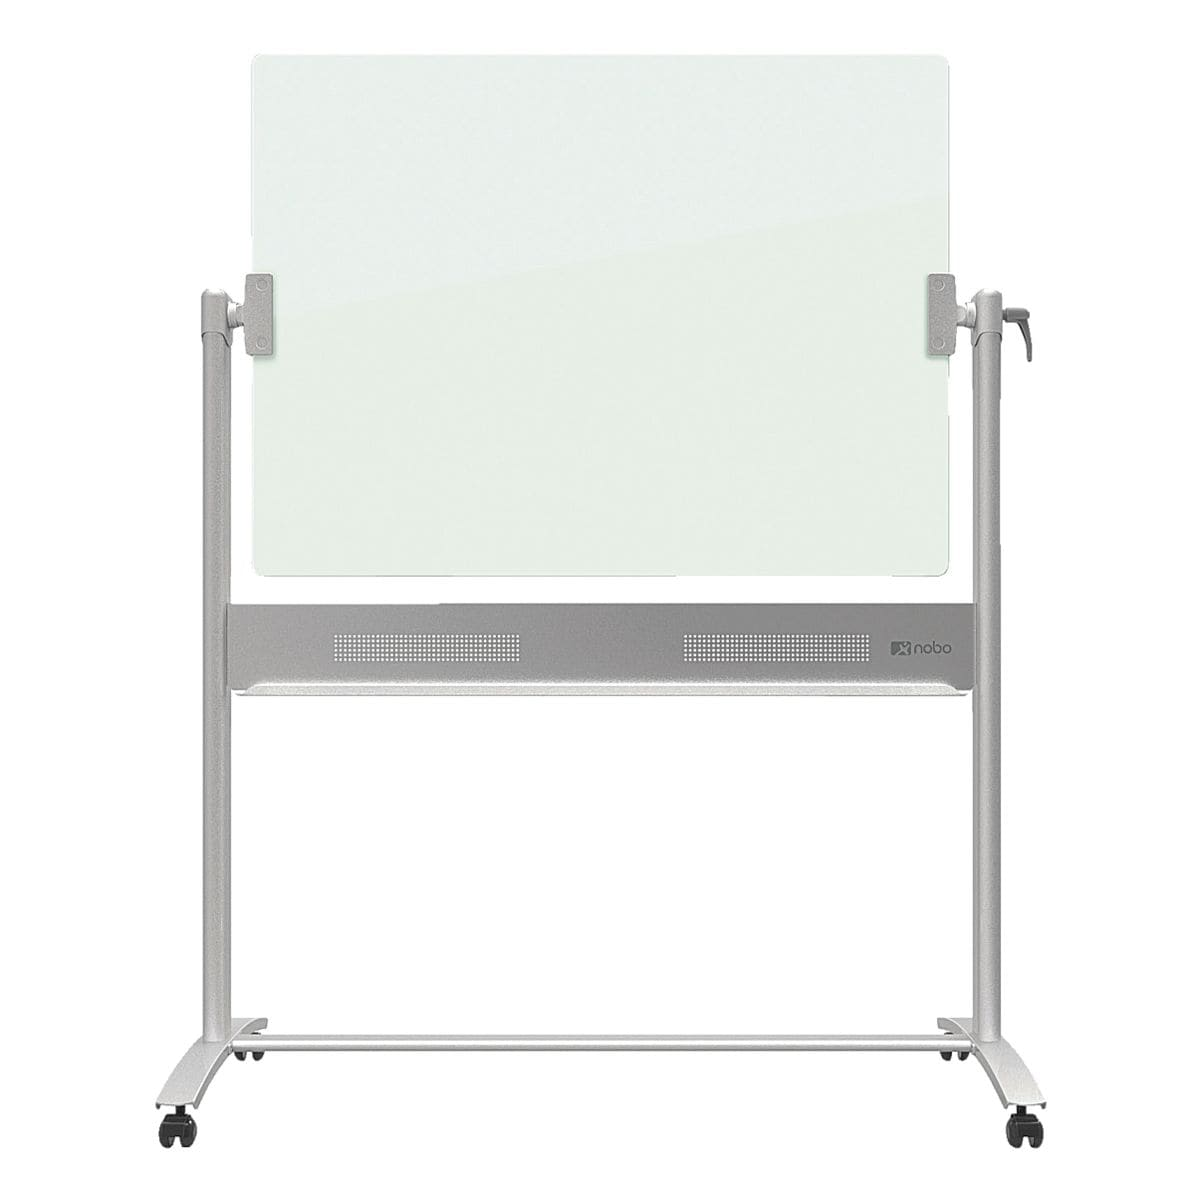 Magnete Kaufen Baumarkt Nobo Whiteboard Diamond 120 X 90 Cm Bei Otto Office